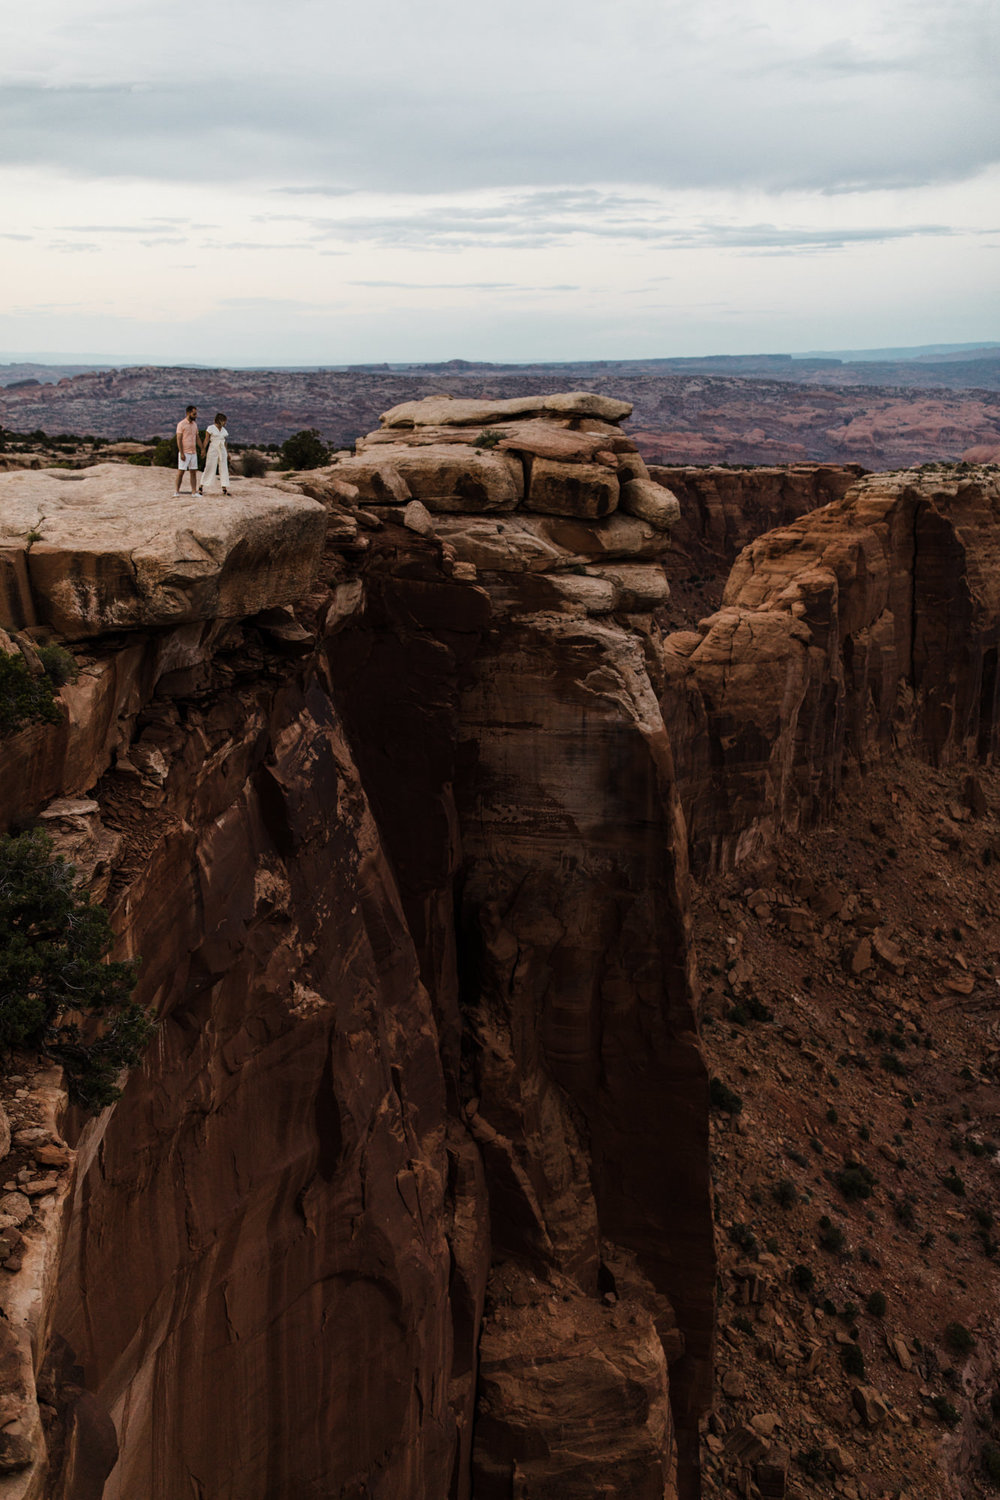 adventure elopement session in moab, utah | destination engagement photo inspiration | utah adventure elopement photographers | the hearnes adventure photography | www.thehearnes.com